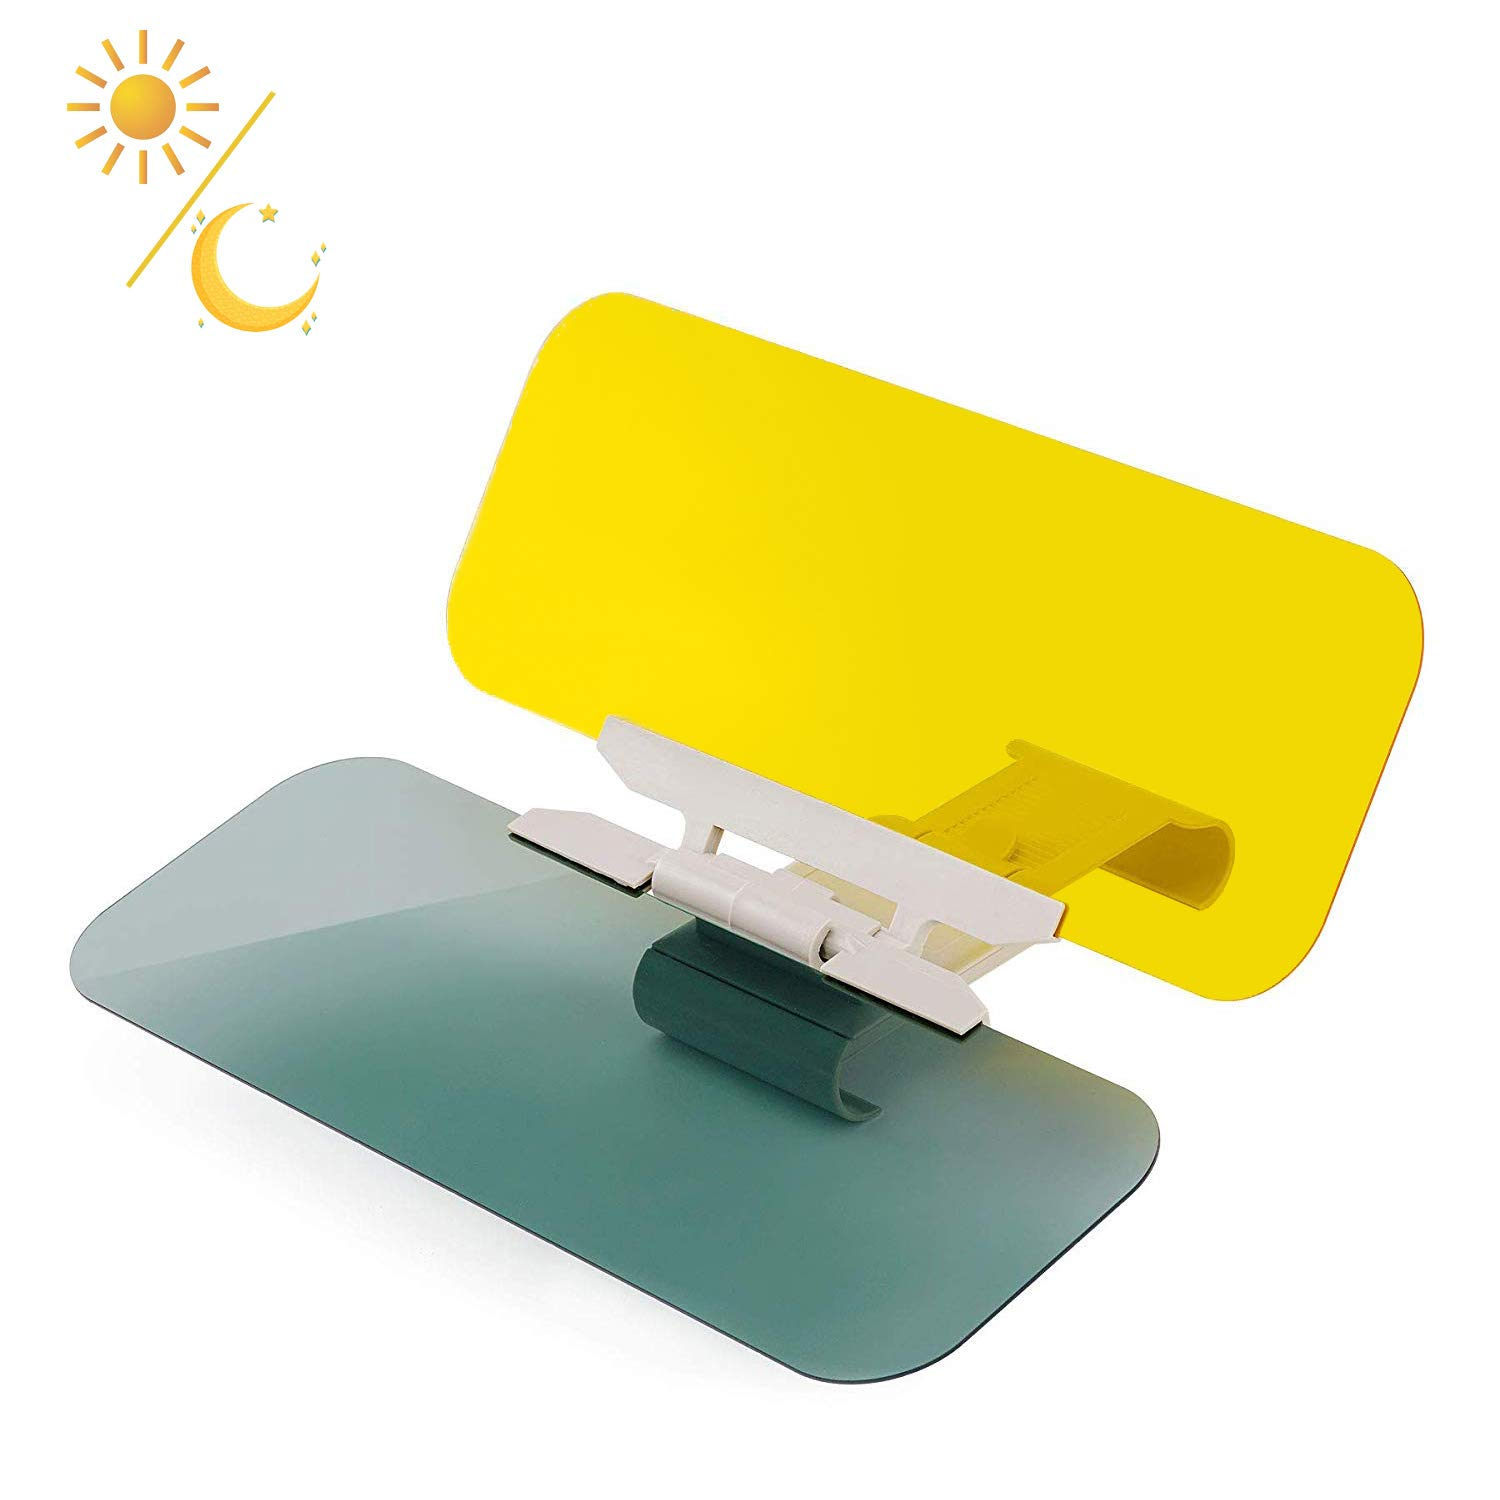 ZEPST Car Sun Visor Extender, Day and Night Vision Anti-Dazzle Driving Sunvisor, 2 in 1 Anti-Glare Car Visor Extension, Automobile Sun Visor Car Windshield Sun Blocker for Driving